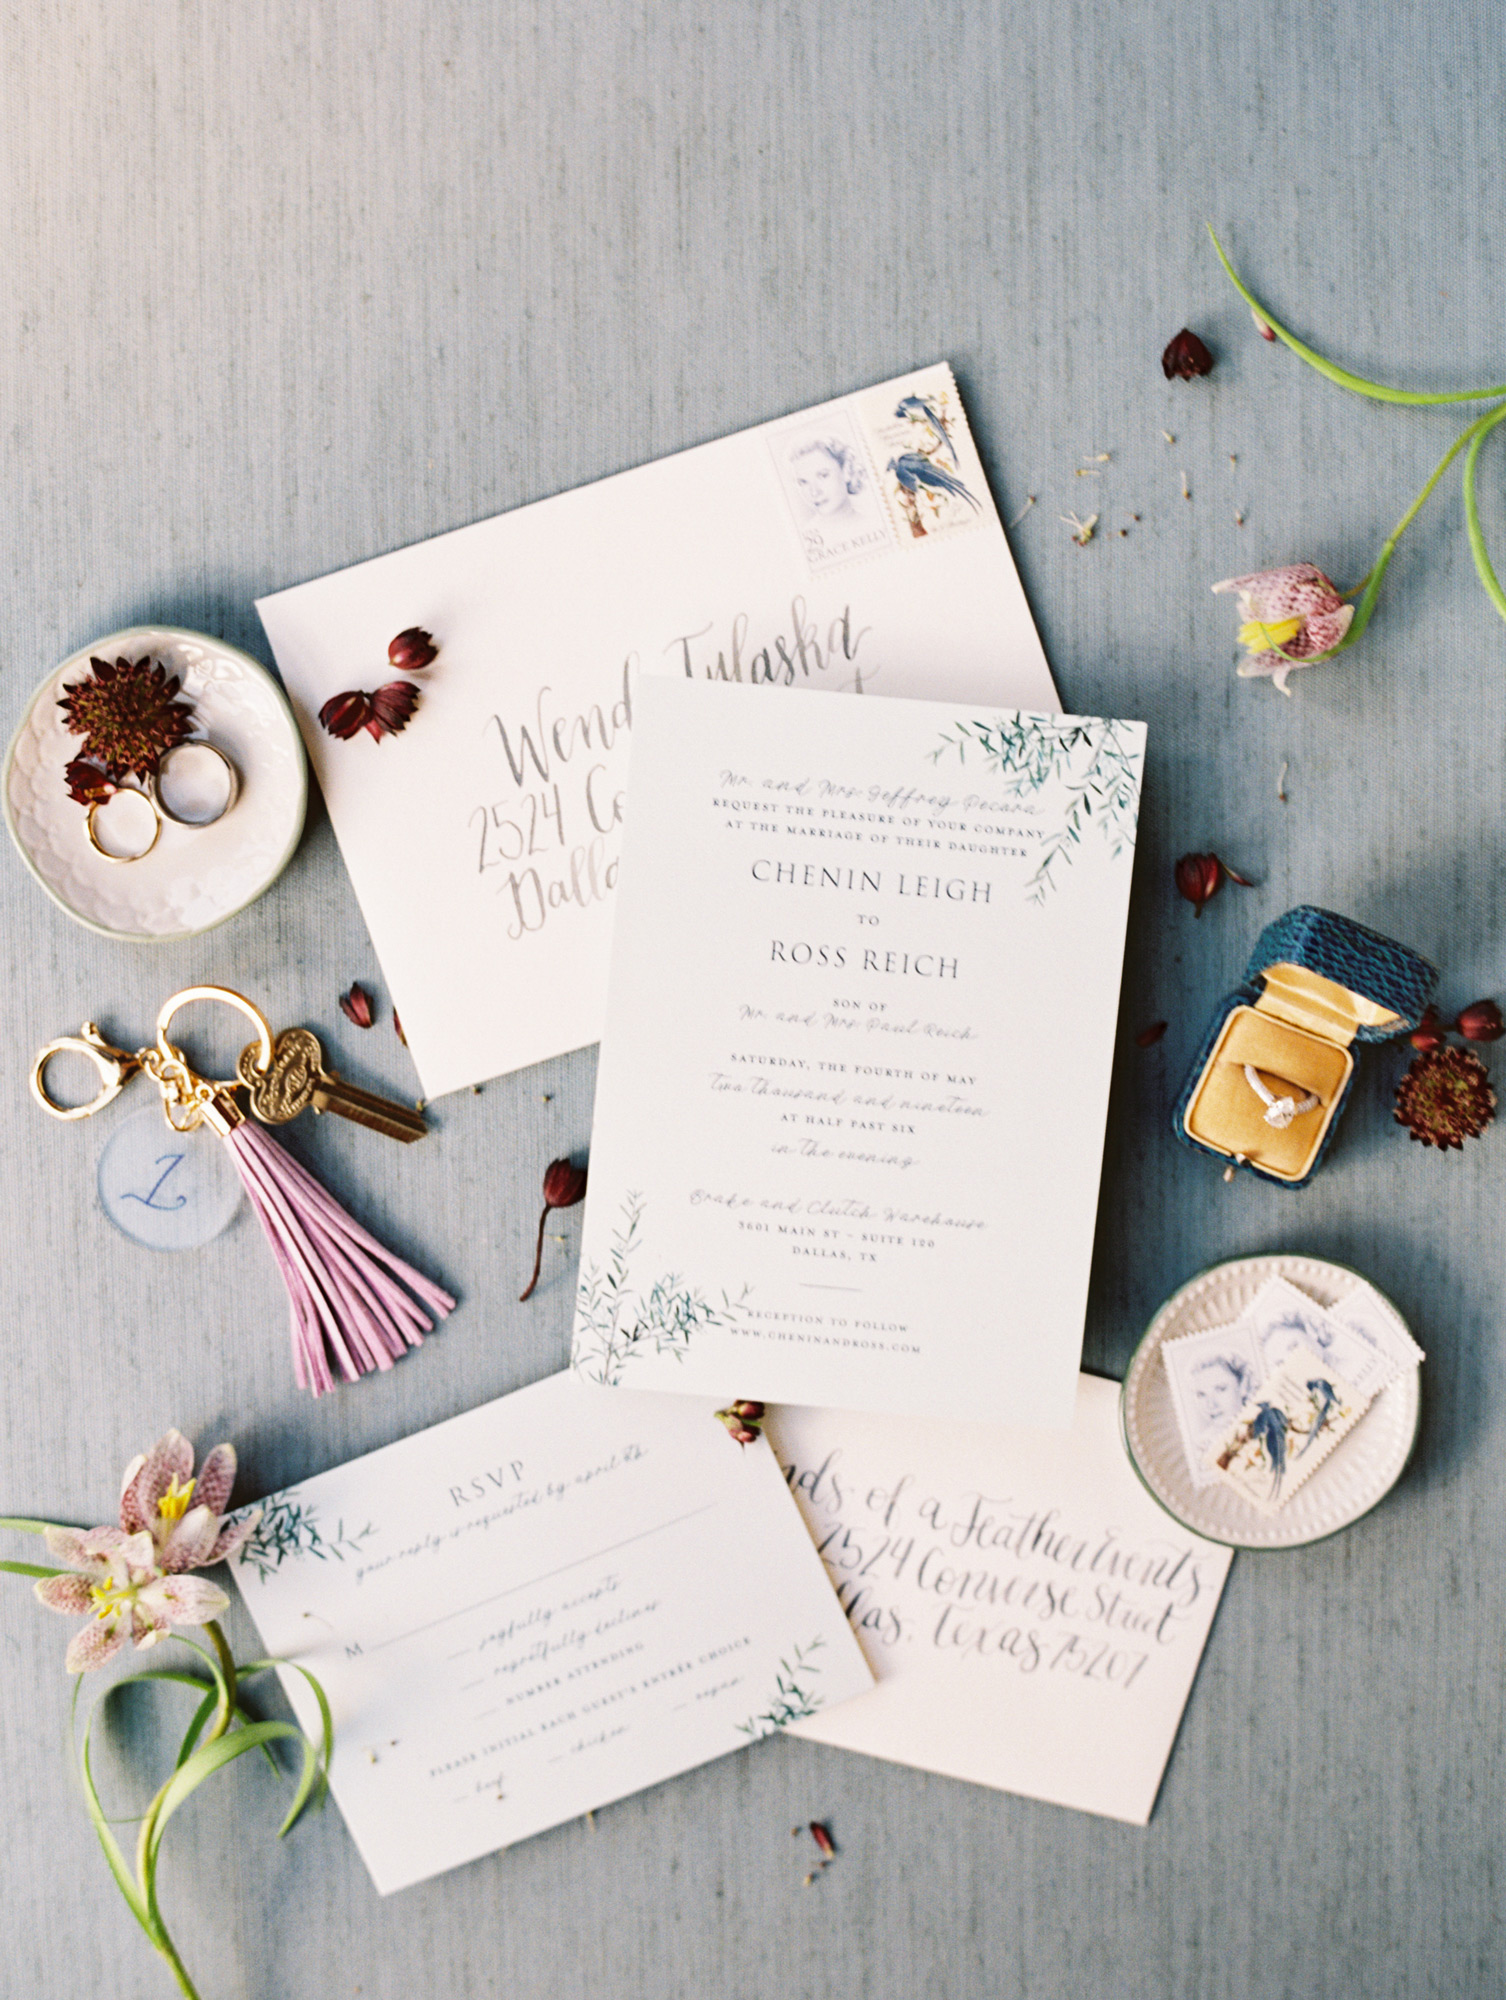 wedding invitation package cream with greenery accents